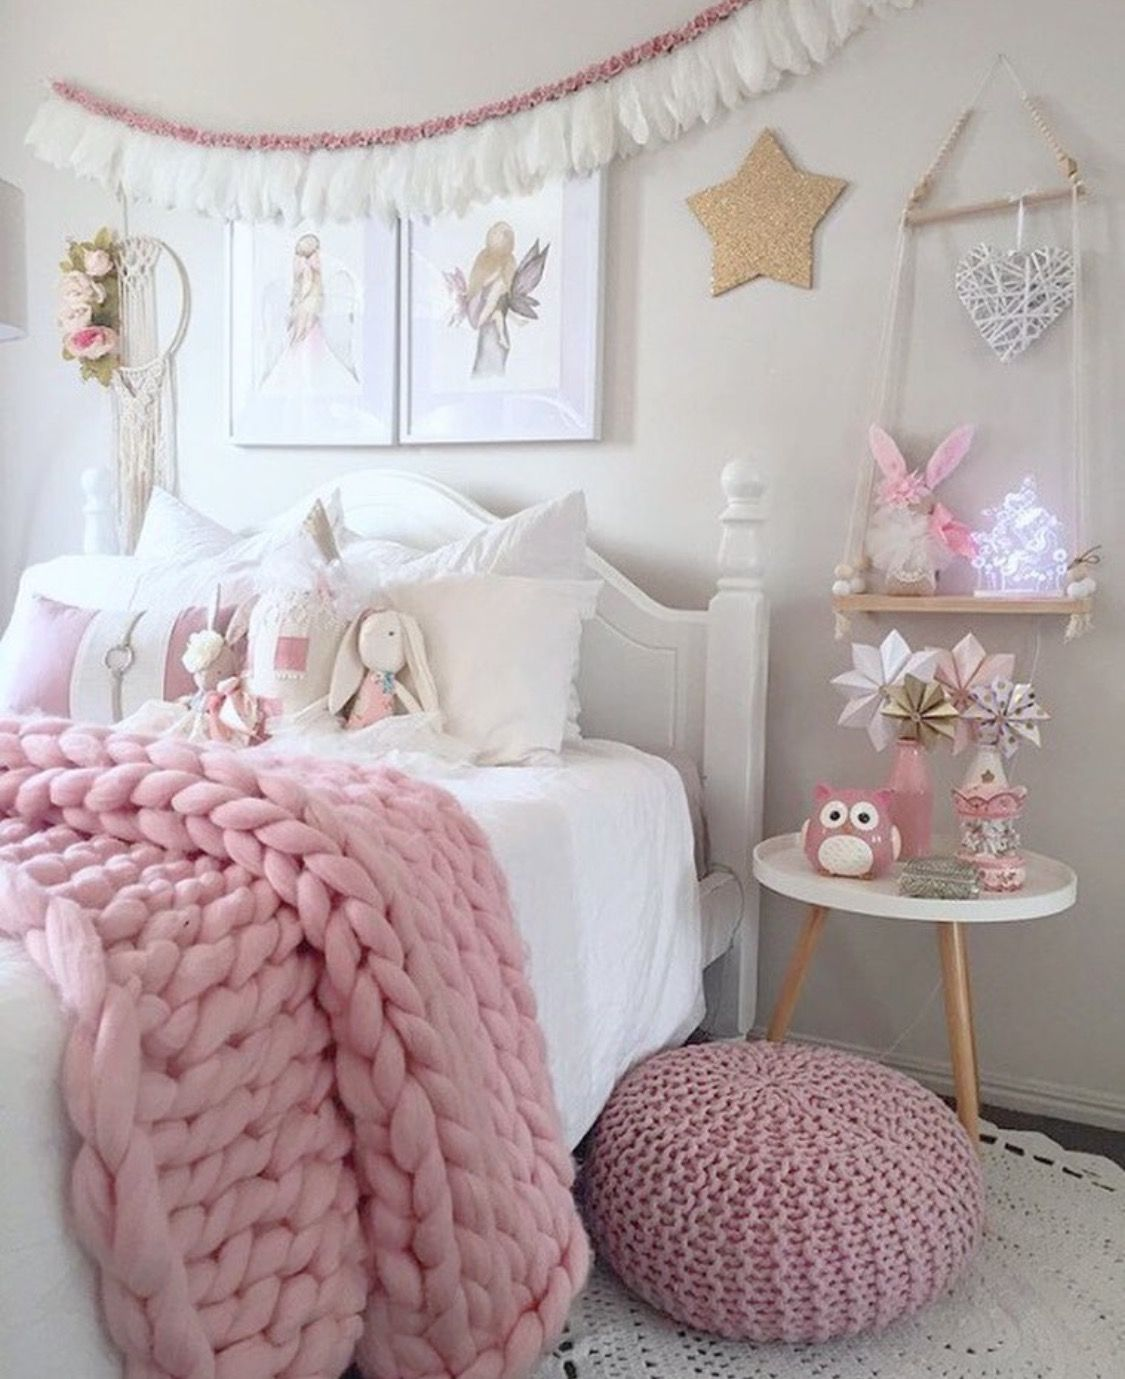 Girls Bedroom Decoration Ides: Get Inspired To Create A Trendy Bedroom For Little Girls